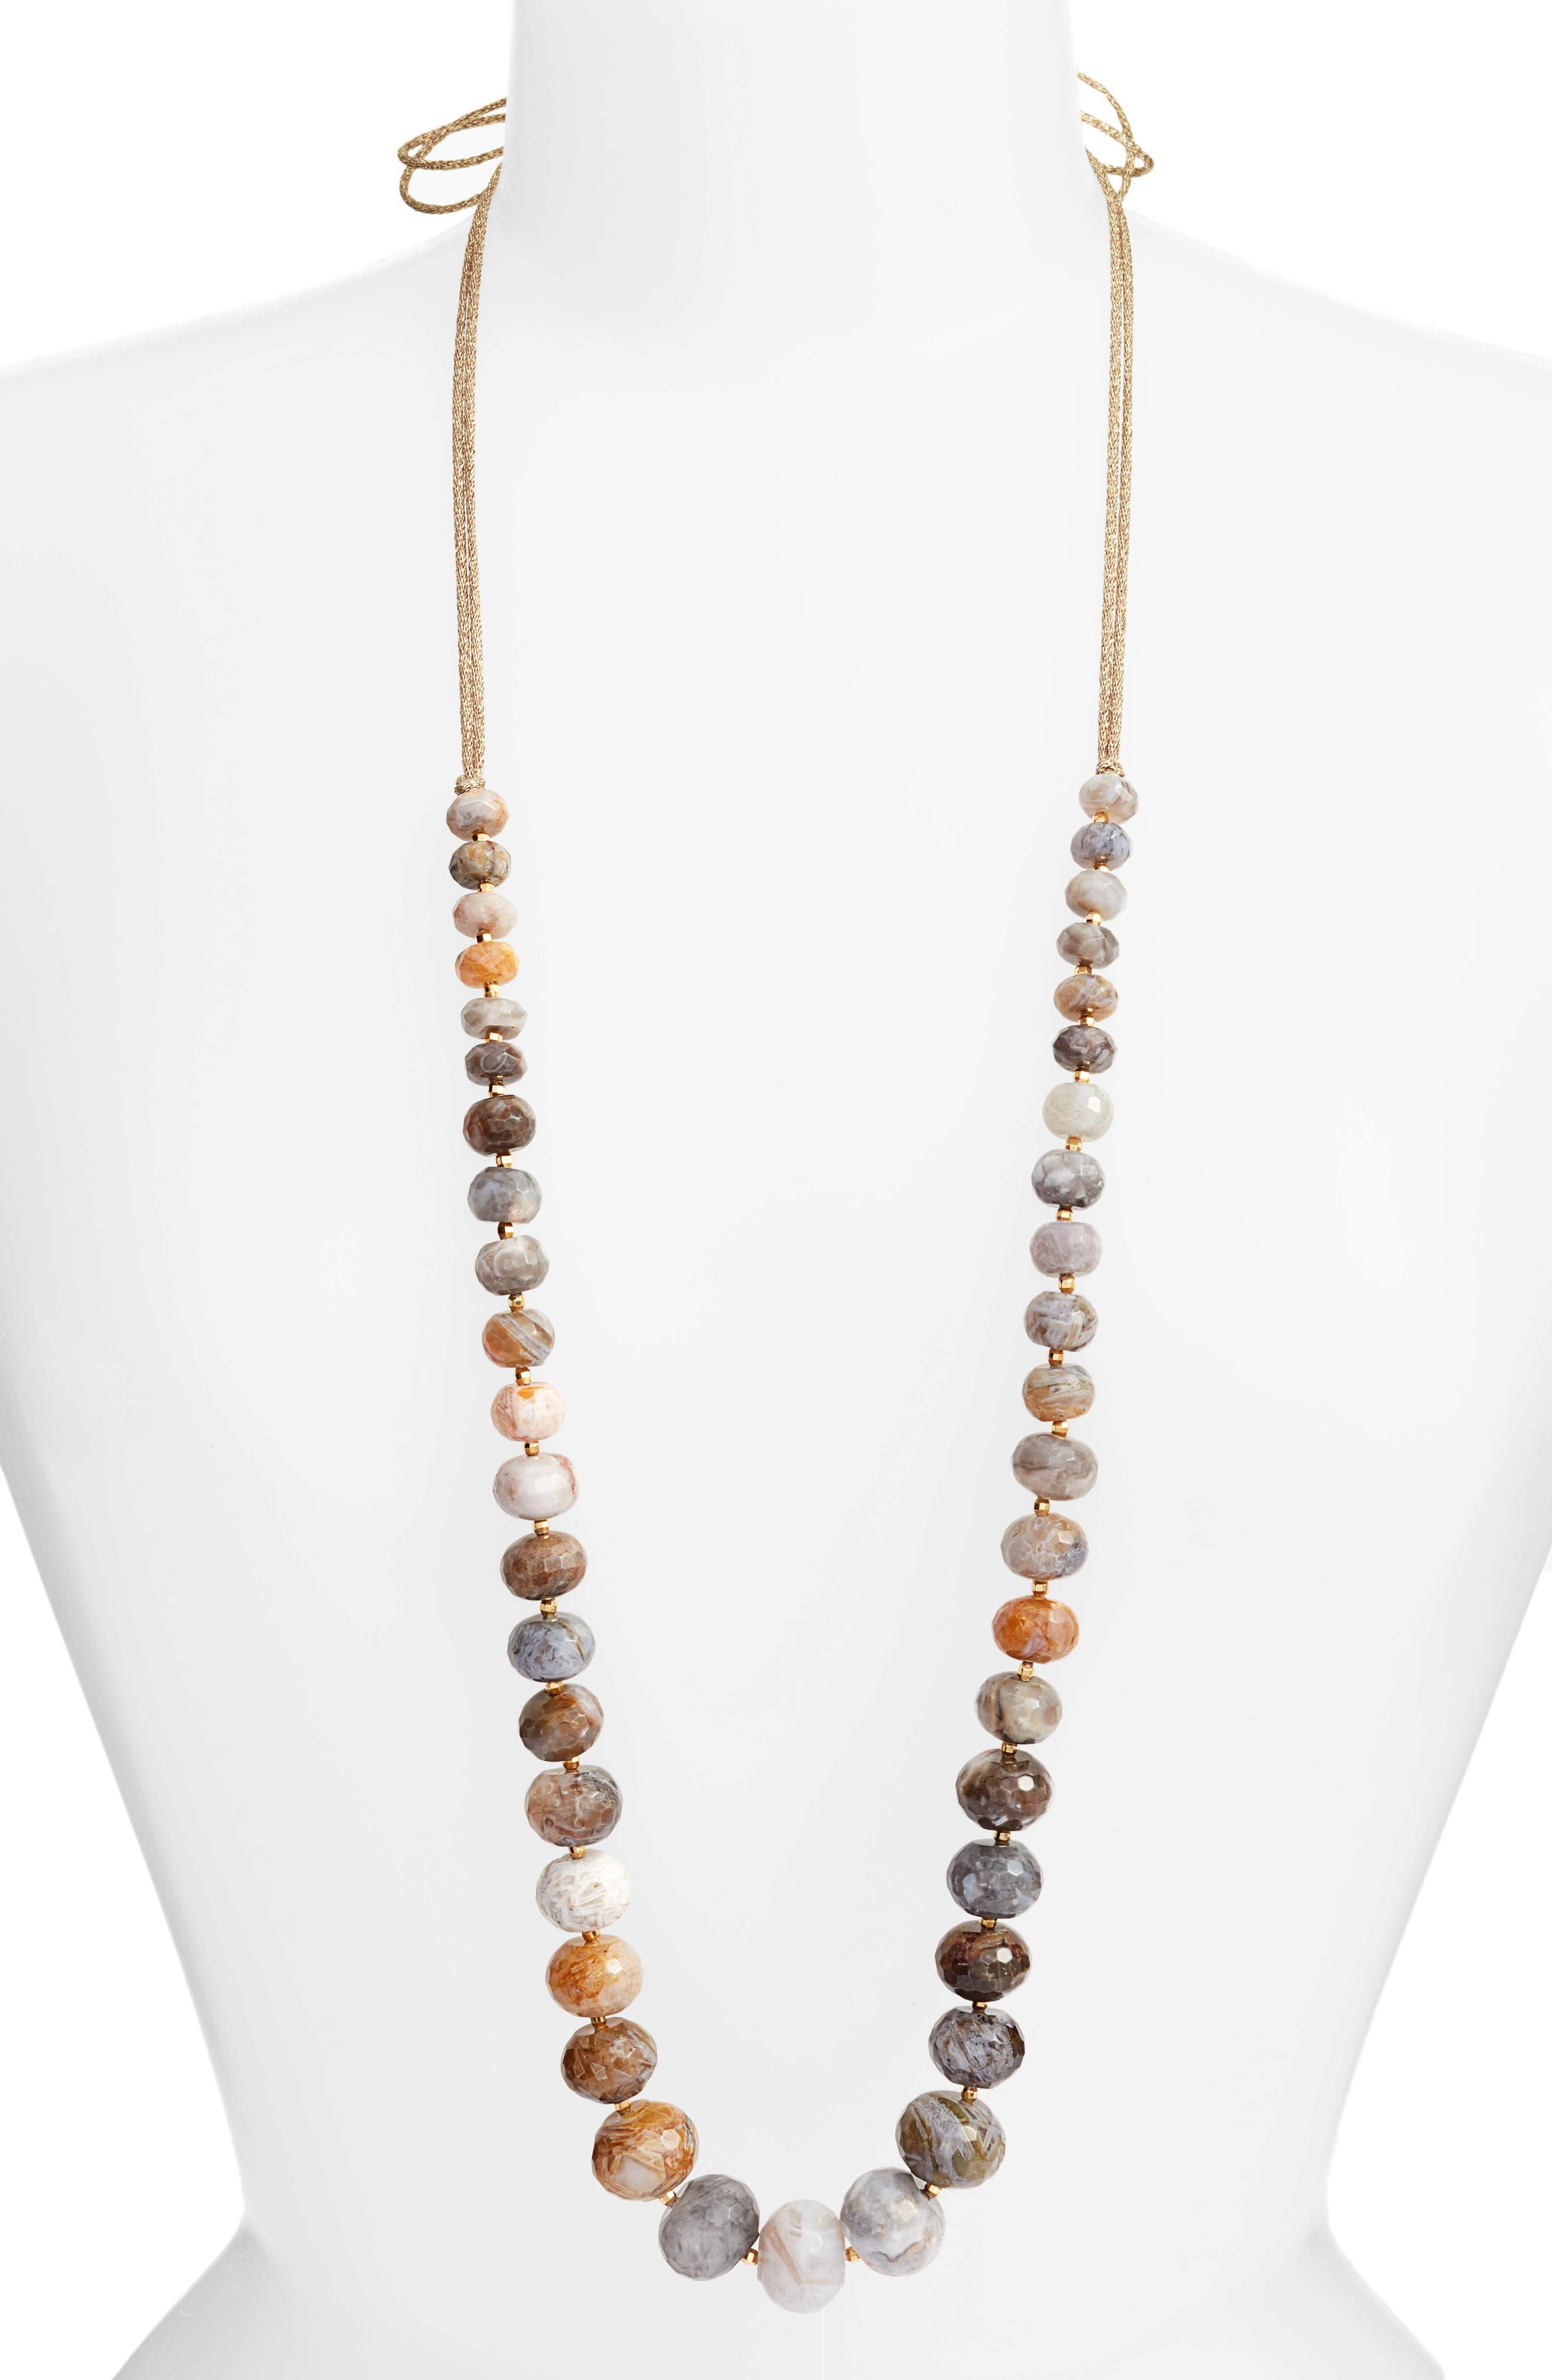 Alternate Image 1 Selected - Chan Luu Graduated Semiprecious Stone Necklace